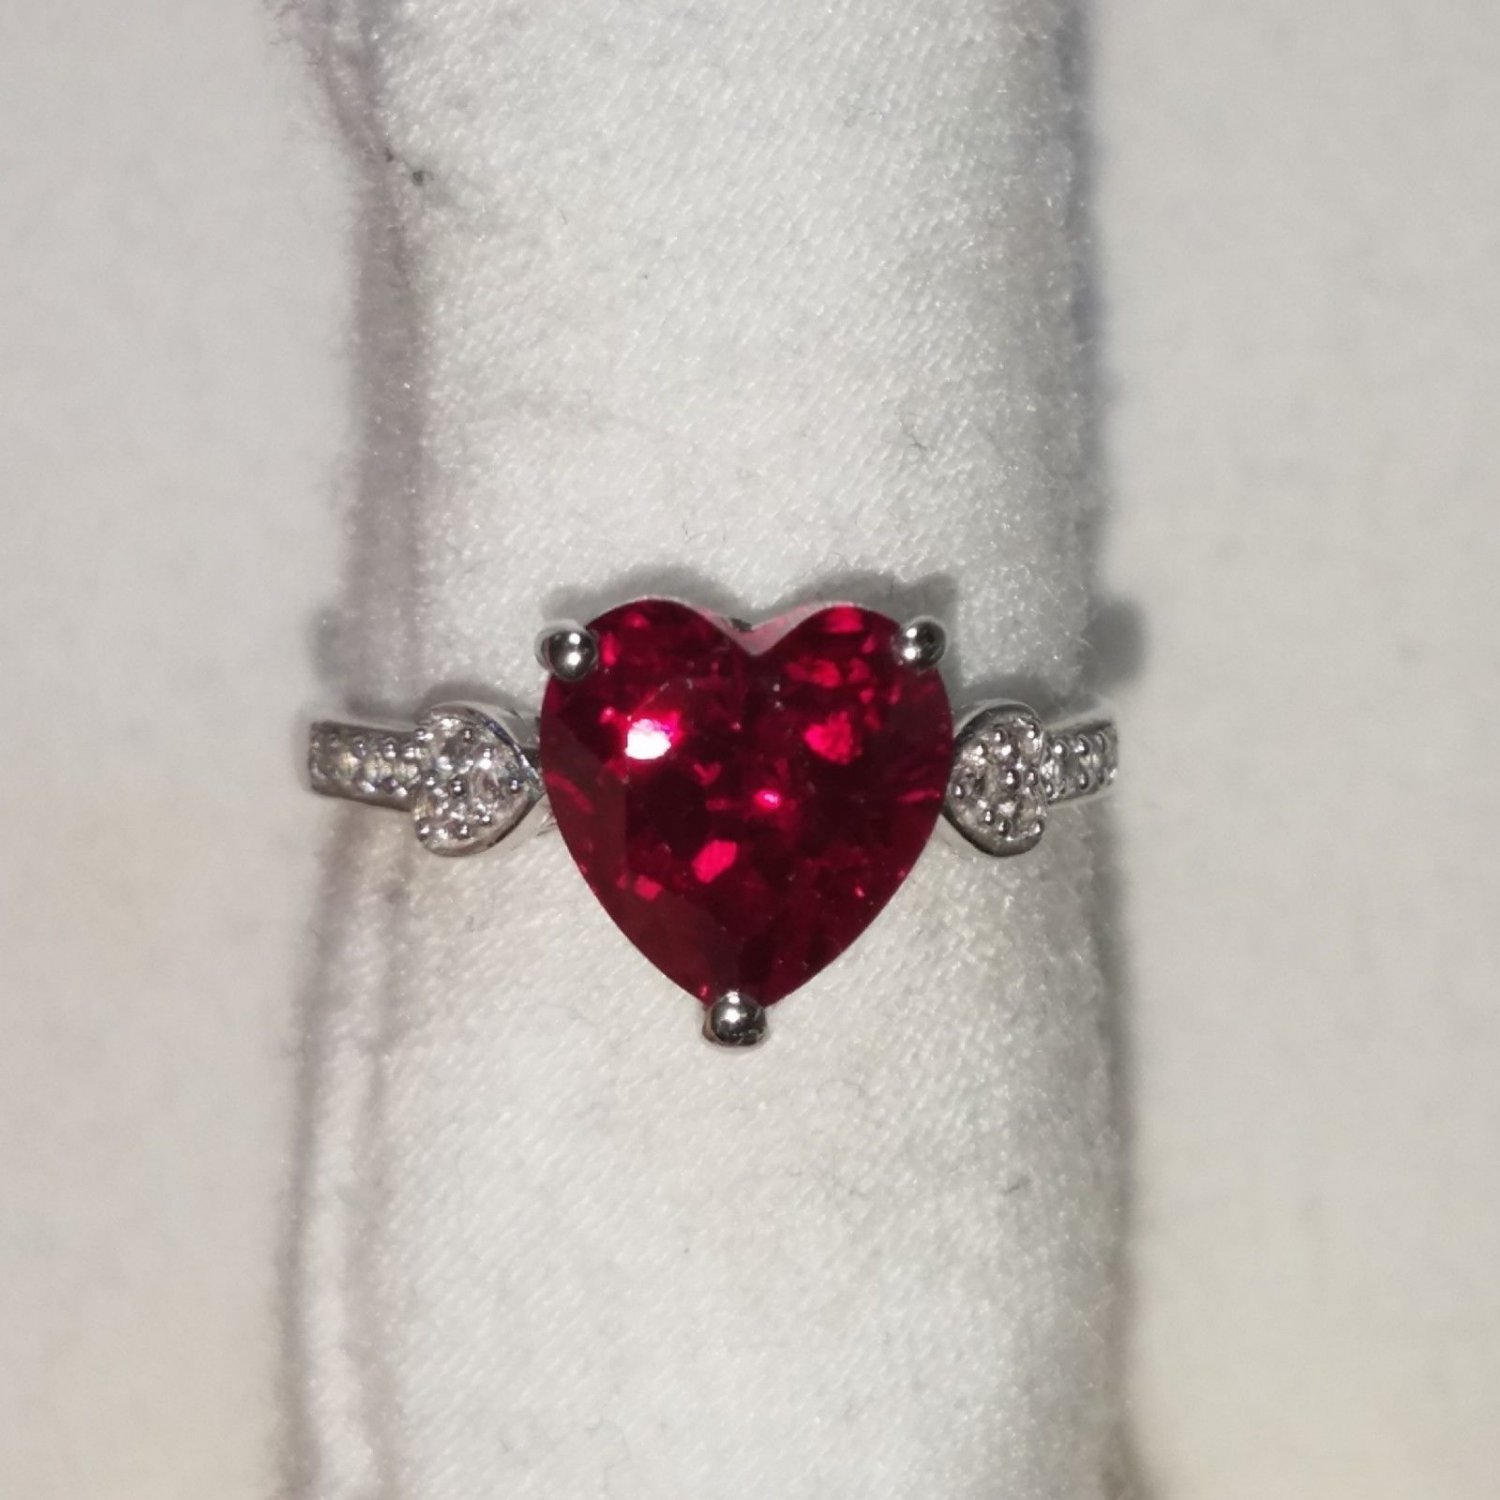 4.5 CARAT RUBY & DIAMOND Accent Size 7 Silver Ring. VALENTINE'S DAY GIFT